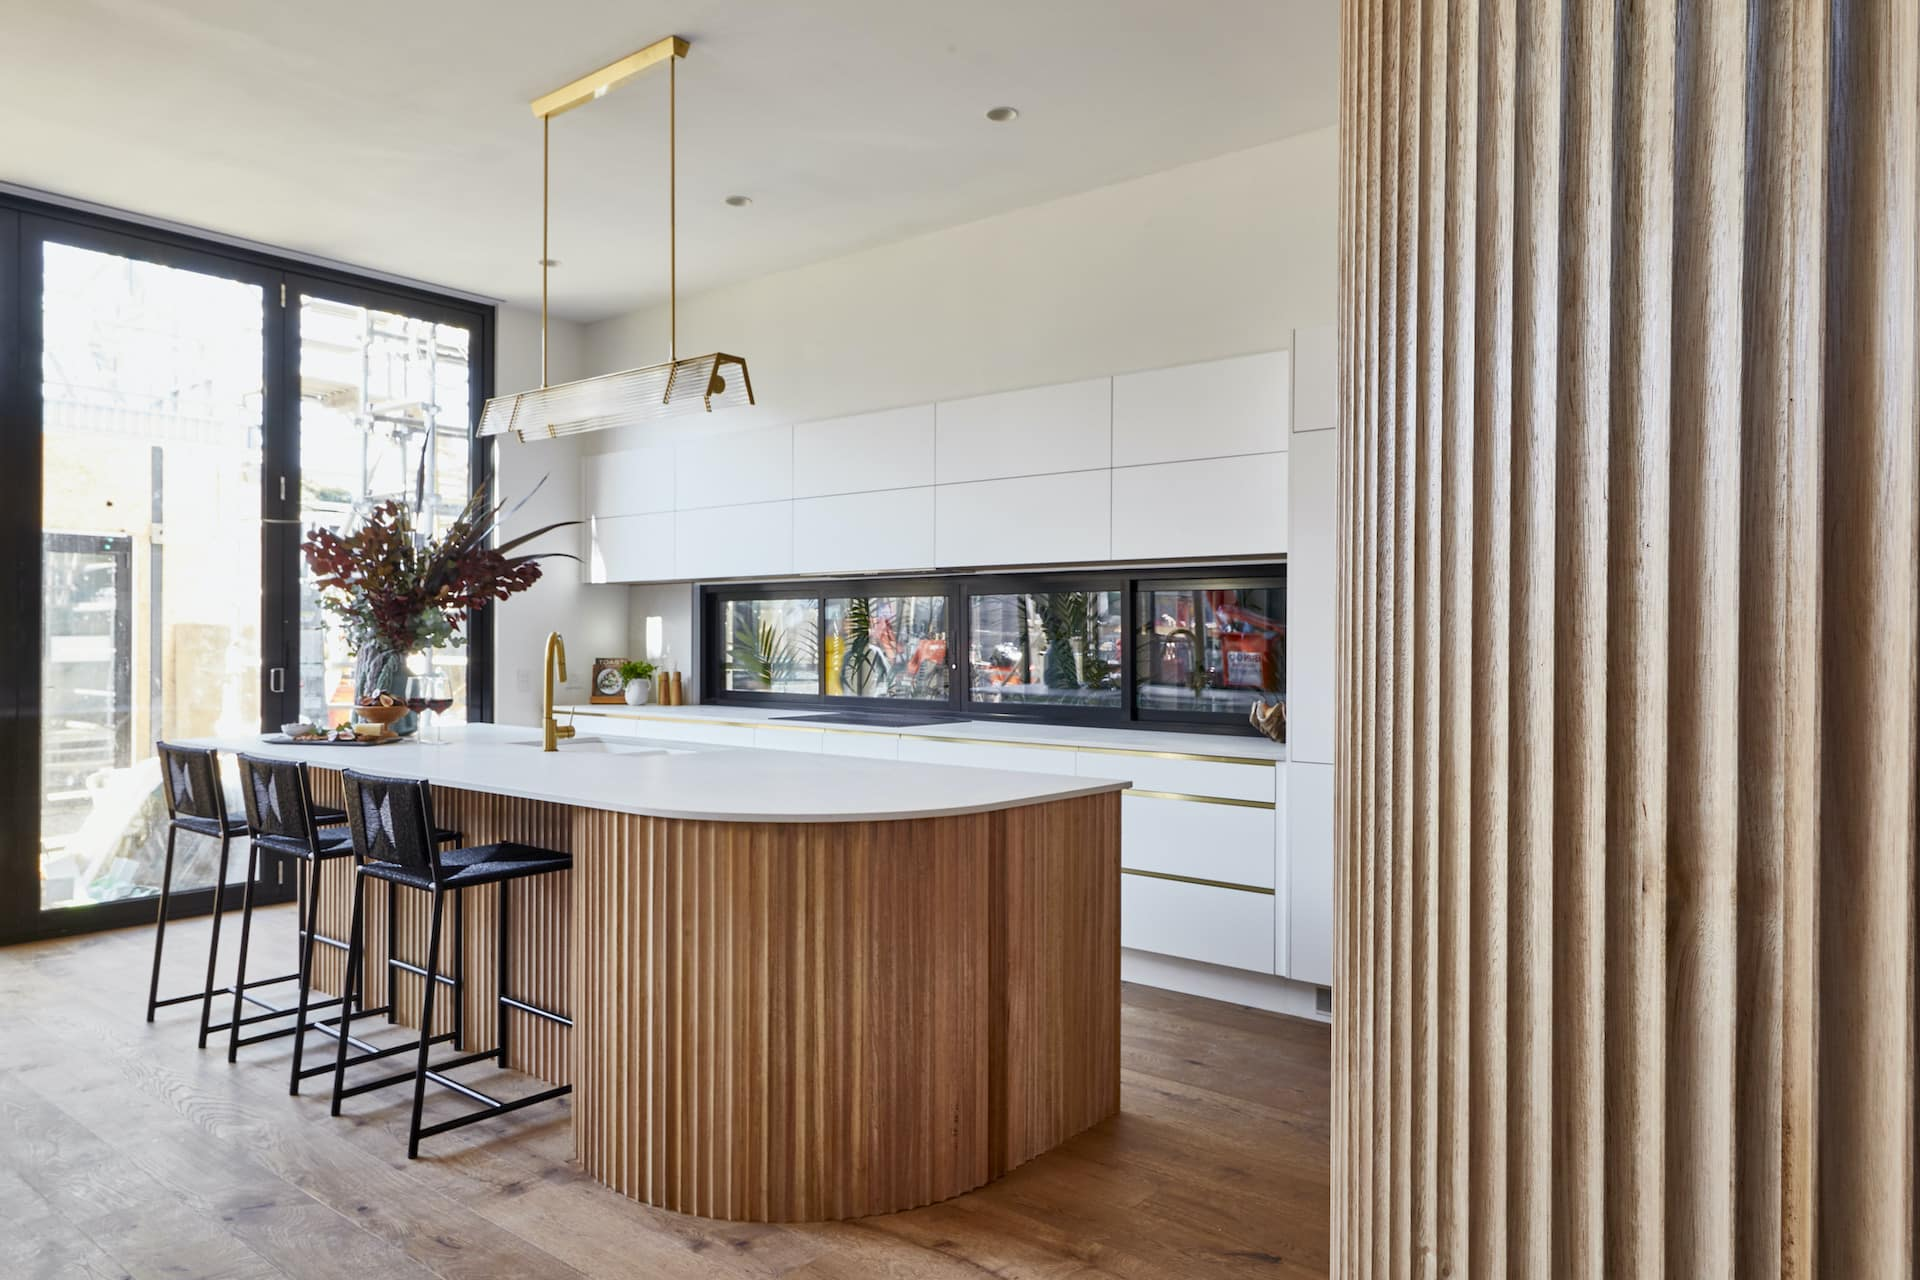 the block 2020 kitchens Luke and Jasmin Kitchen cabinets corrugated timber fronts curved wall